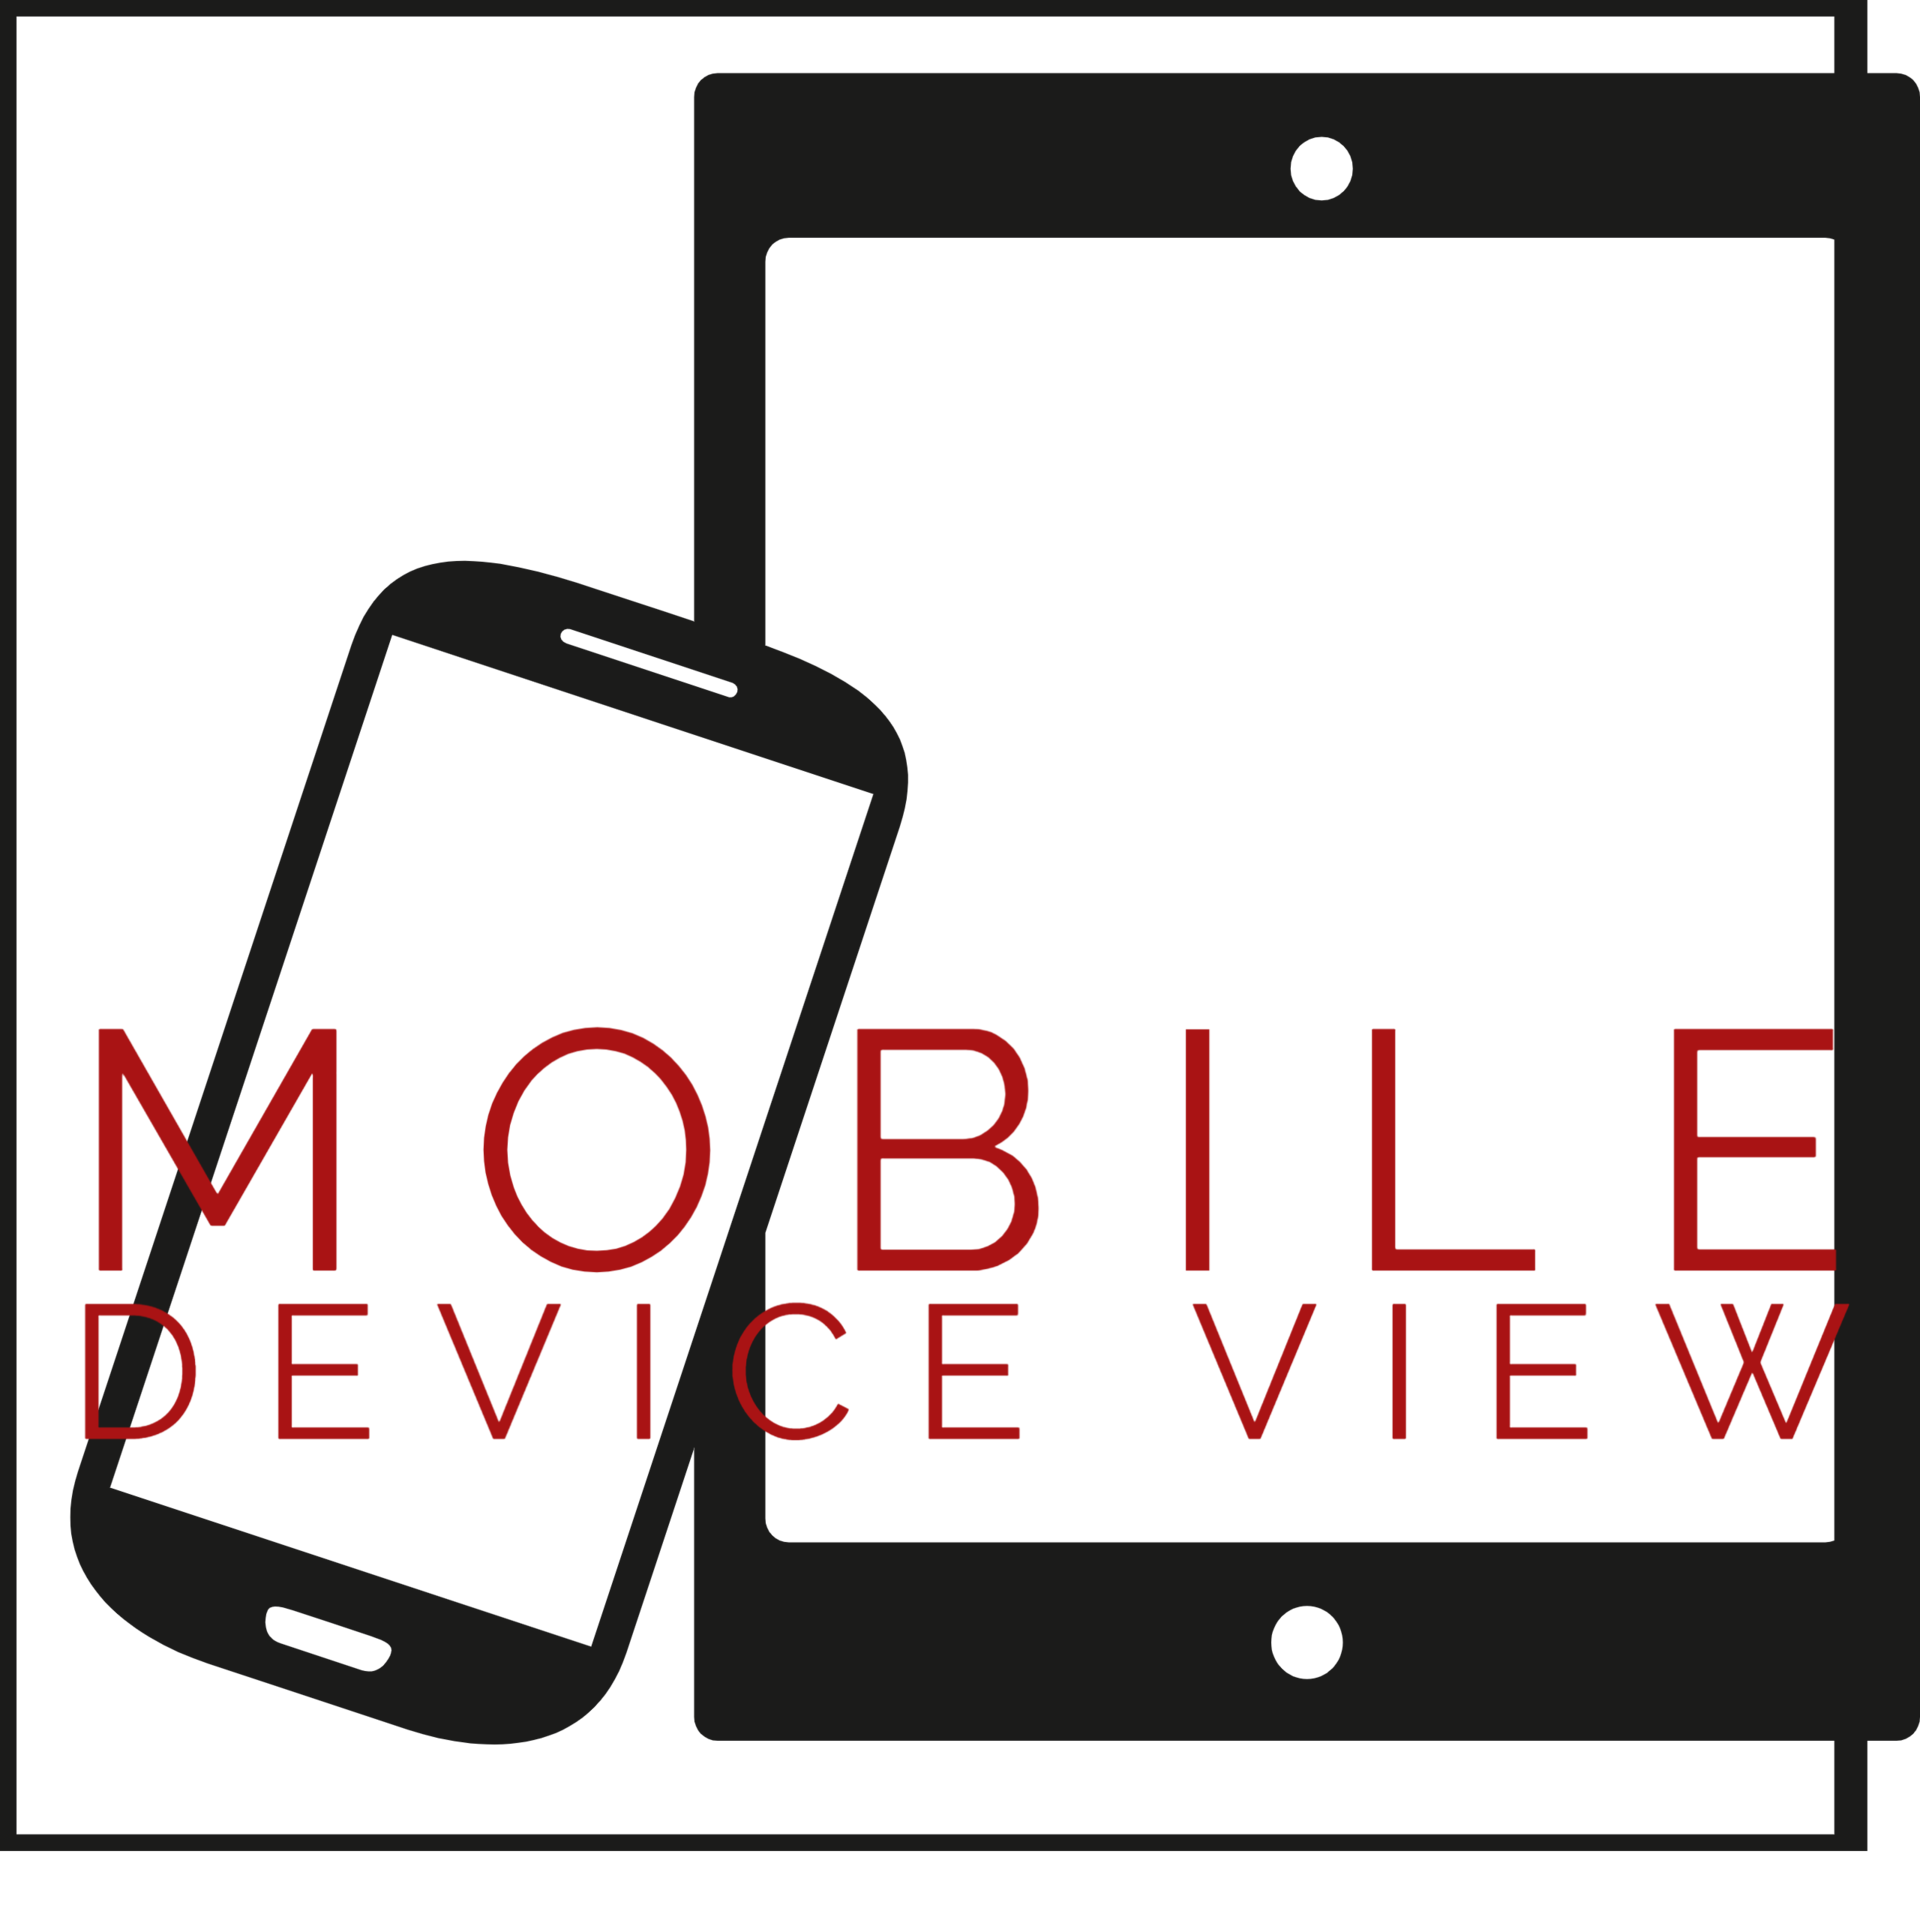 Mobile Deview View image of cell phone and tablet